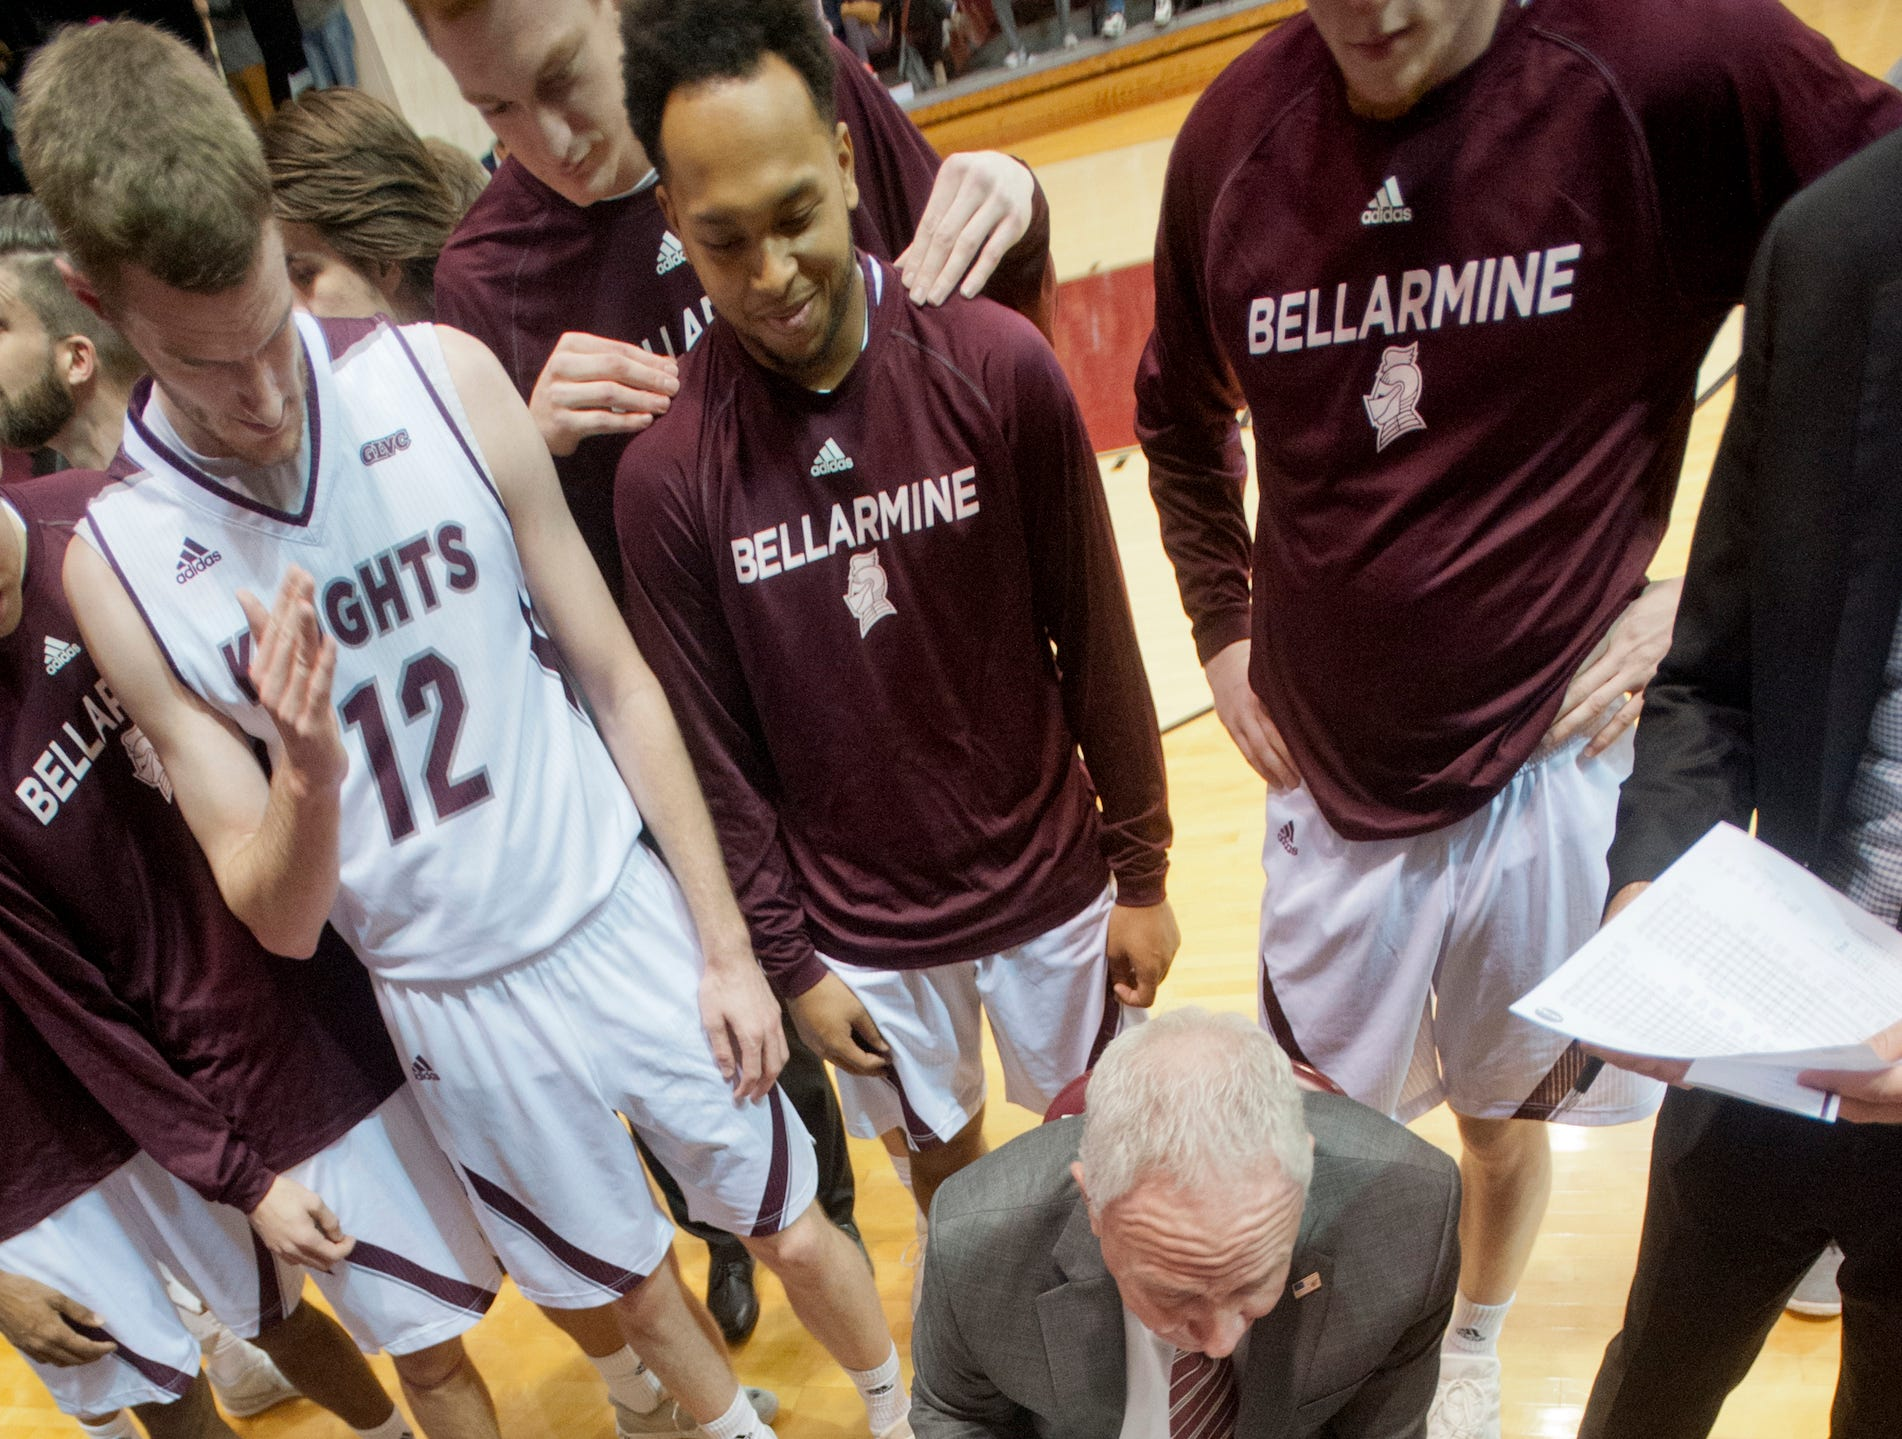 At the start of the second half of play, Bellarmine head basketball coach Scott Davenport huddles with his players as he maps out plan of action on his clipboard.18 December 2018